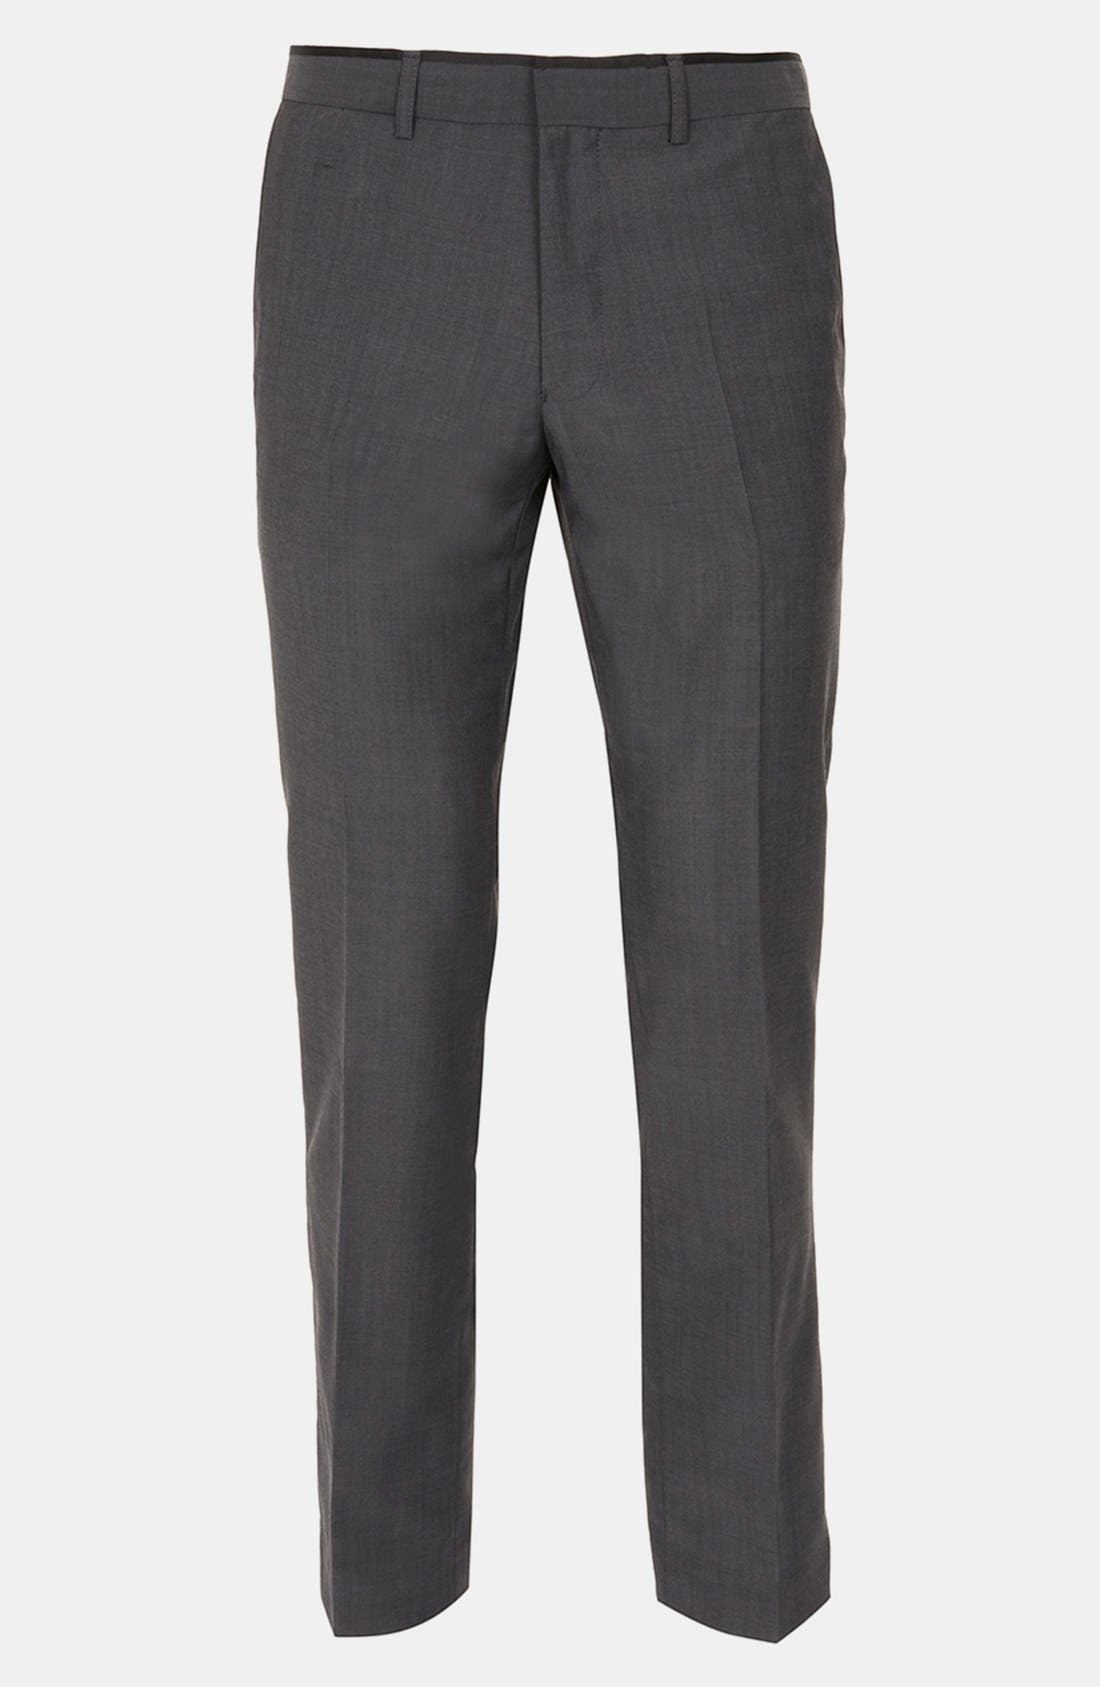 Alternate Image 1 Selected - Topman Skinny Flat Front Trousers